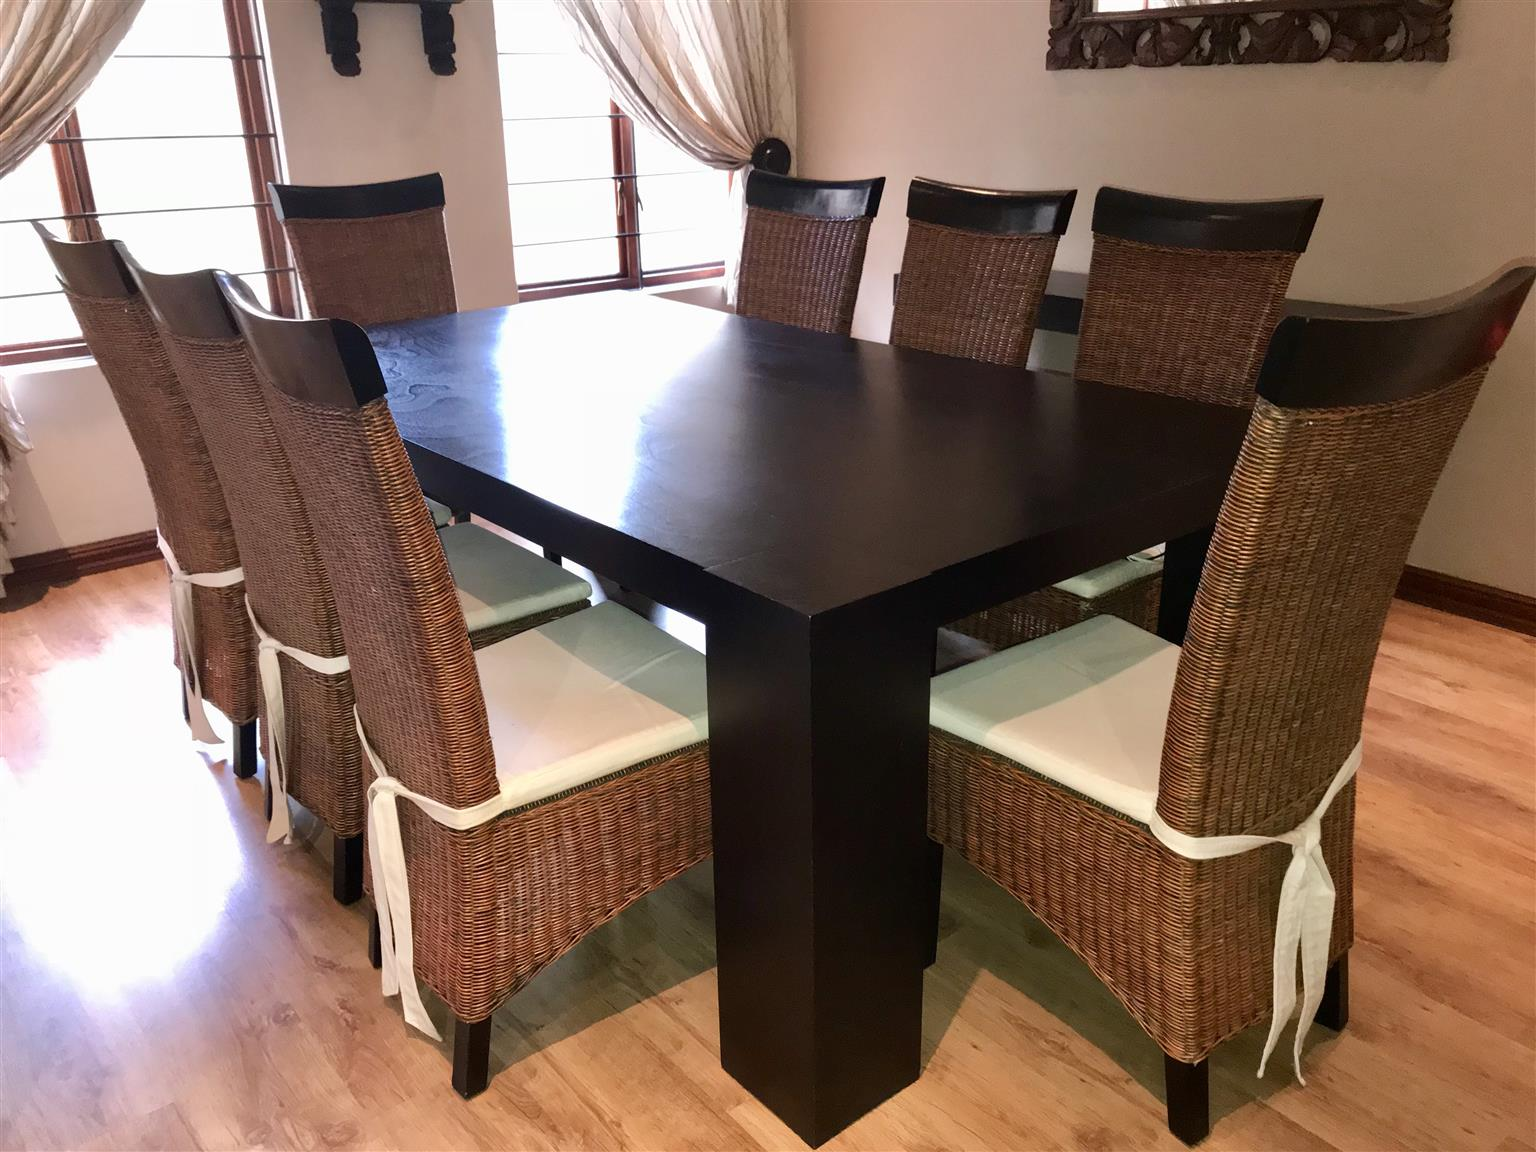 8-seater Coricraft Dining Room Table including 8 Chairs